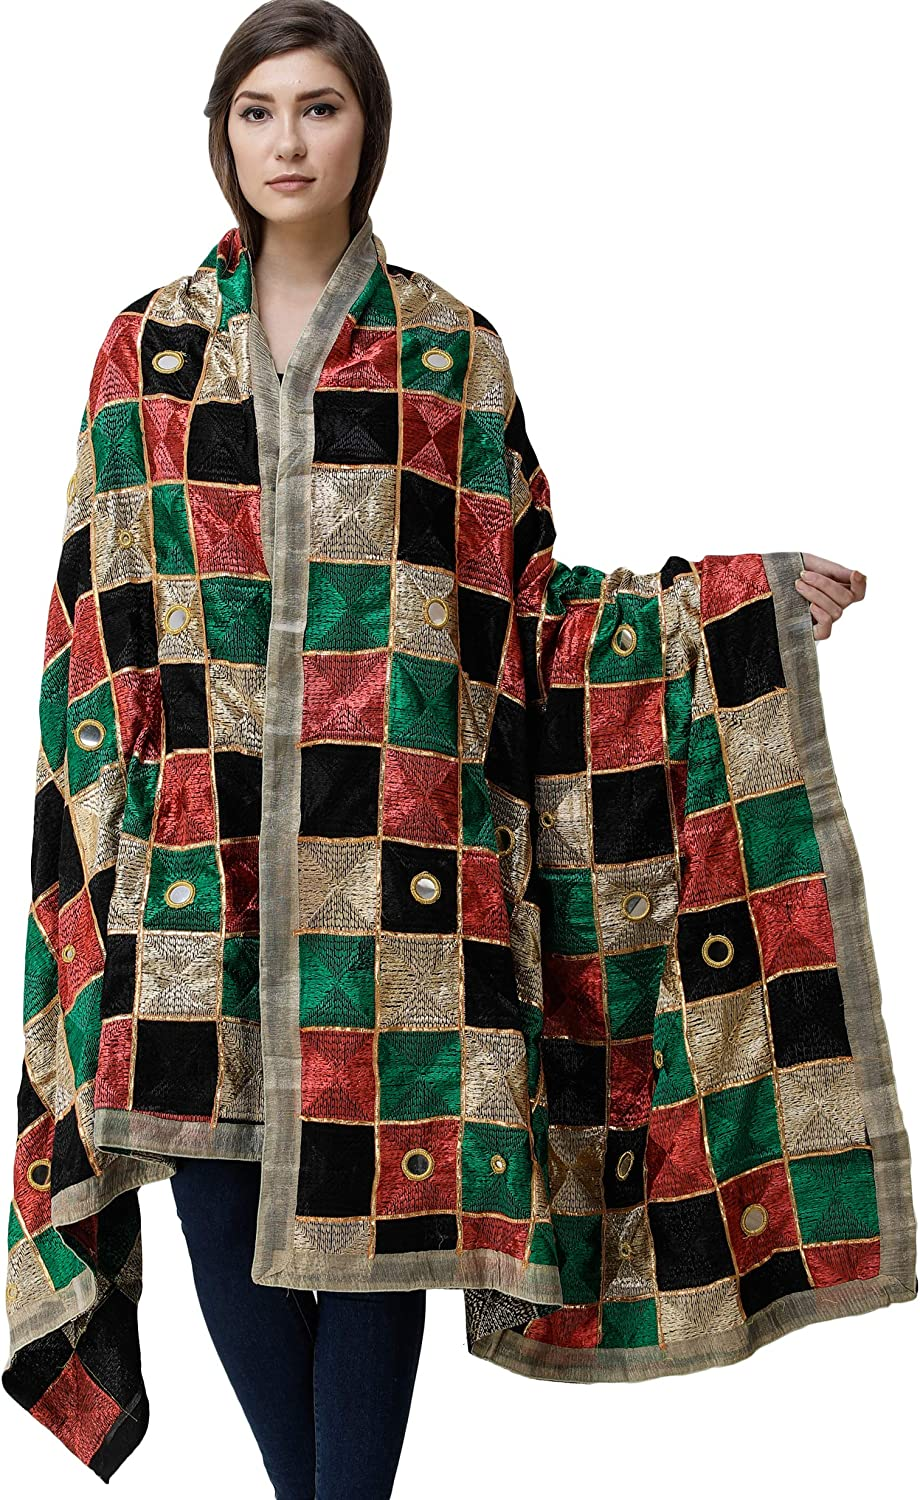 Exotic India Phulkari Dupatta from Popular brand in the world Embroidery Punjab with High material All-Ov